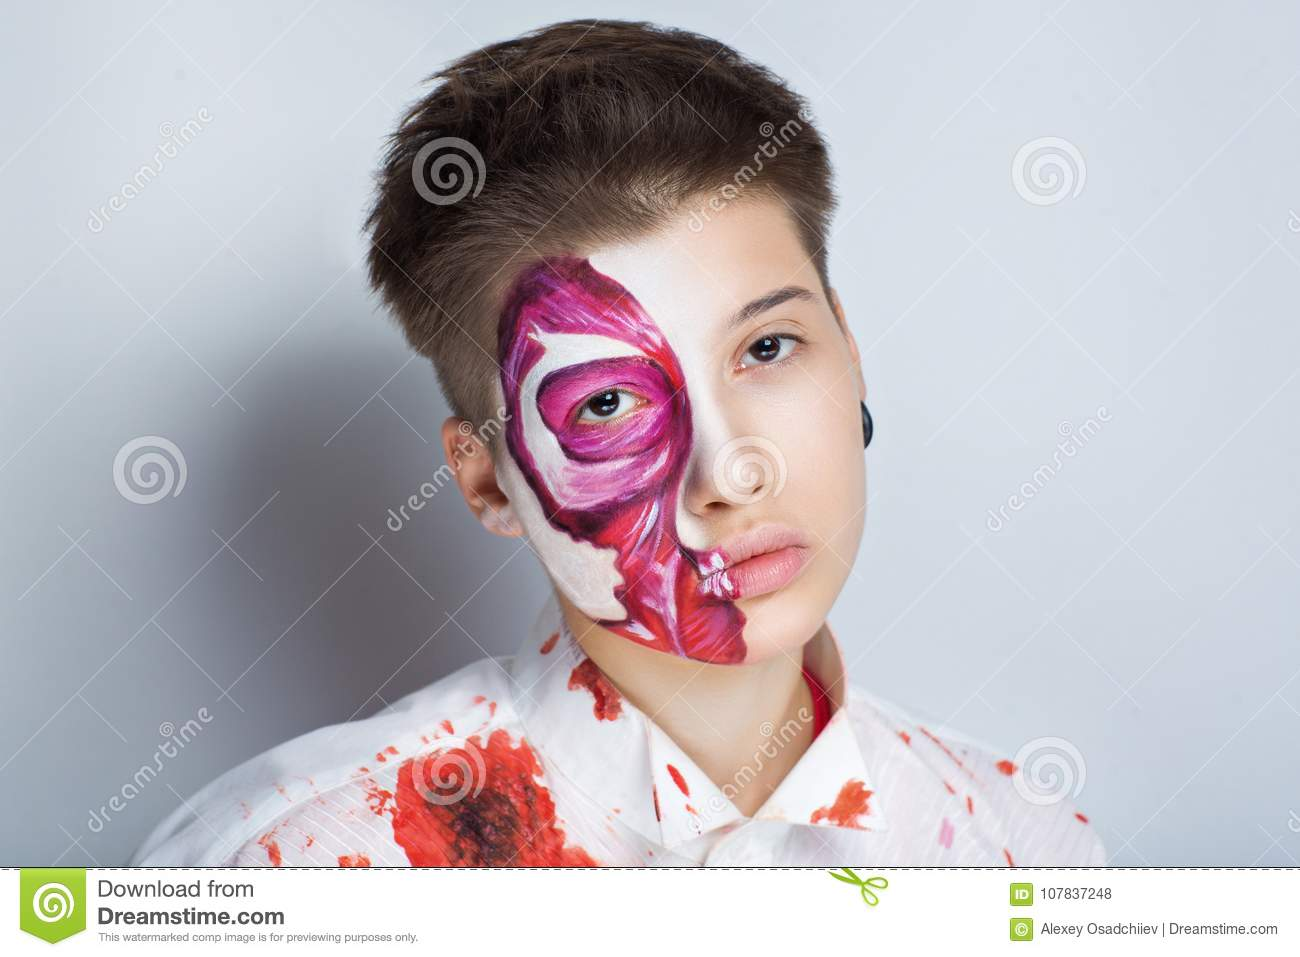 Halloween Costume Ideas For Girls With Short Hair.Meat Halloween Makeup Stock Photo Image Of Meat Eyes 107837248